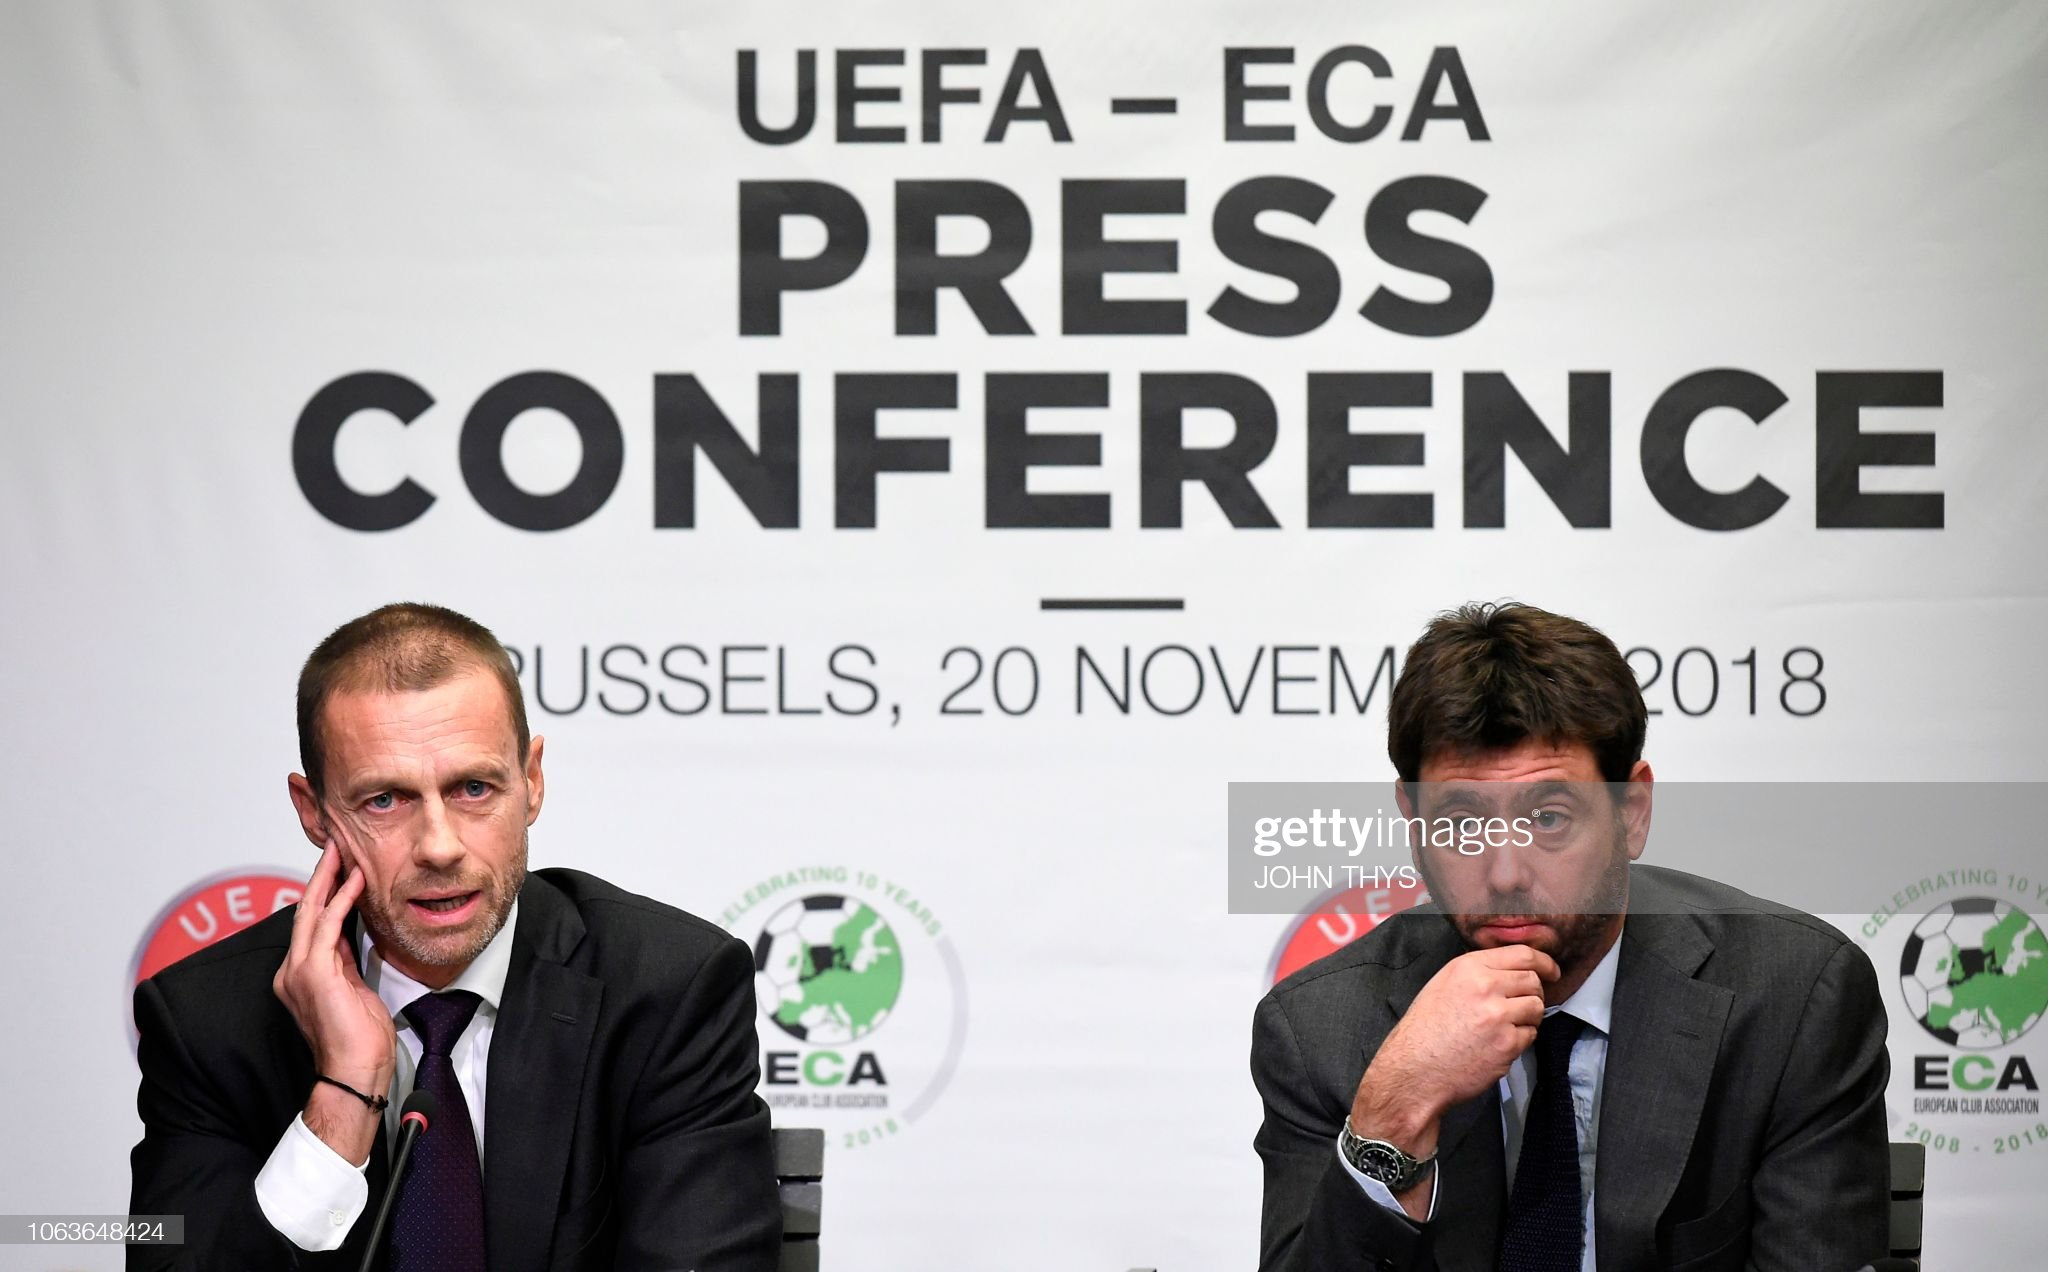 https://media.gettyimages.com/photos/union-of-european-football-associations-president-aleksander-ceferin-picture-id1063648424?s=2048x2048